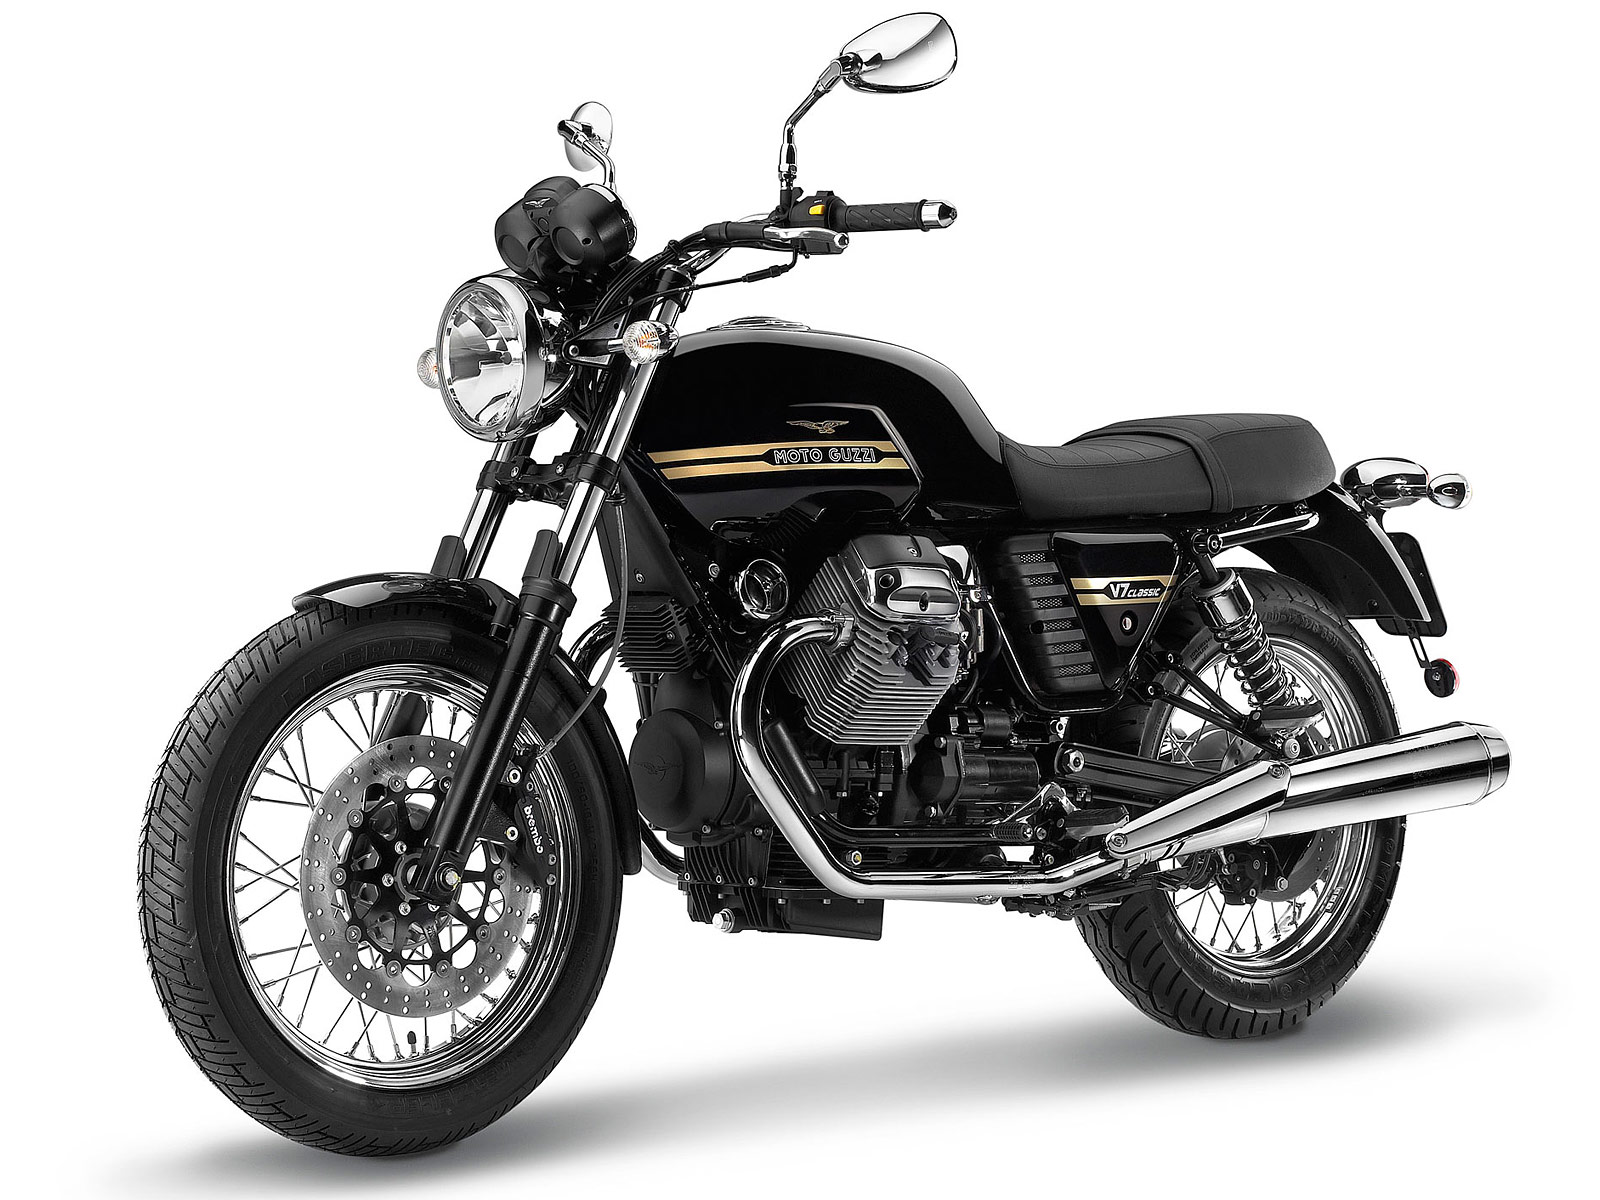 2013 moto guzzi v7 classic motorcycle specifications. Black Bedroom Furniture Sets. Home Design Ideas